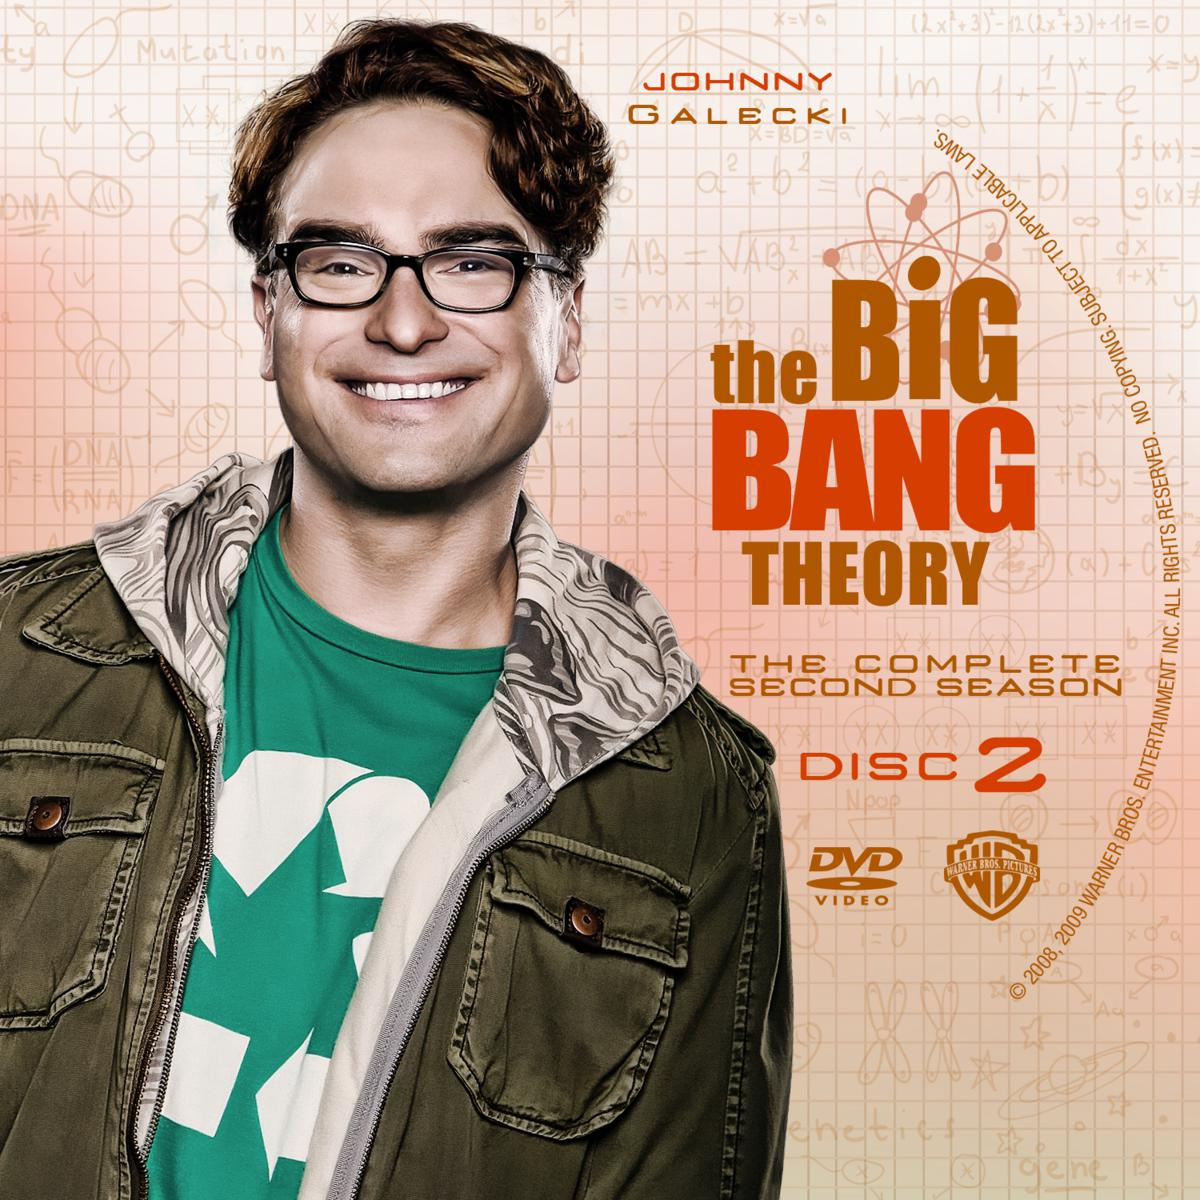 Label The Big Bang Theory The Complete Second Season